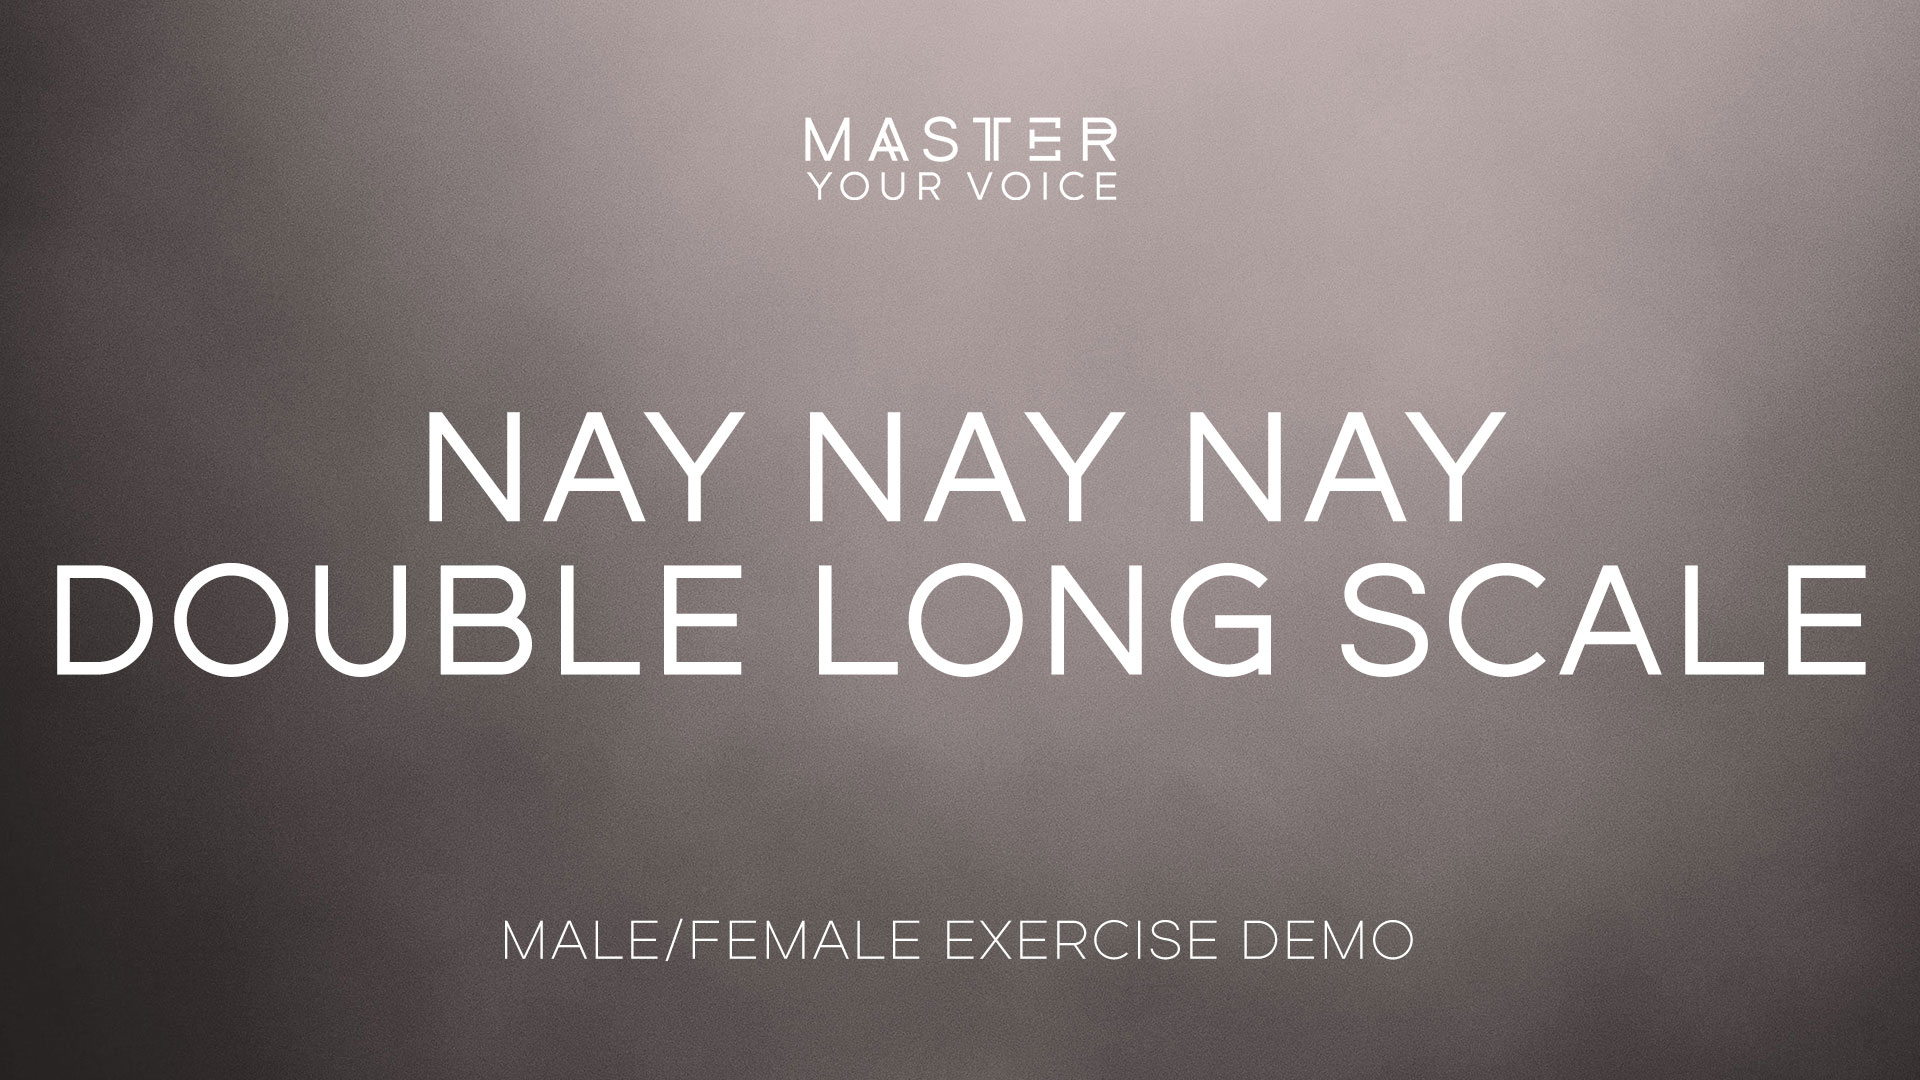 Nay Nay Nay Double Long Scale Exercise Demo